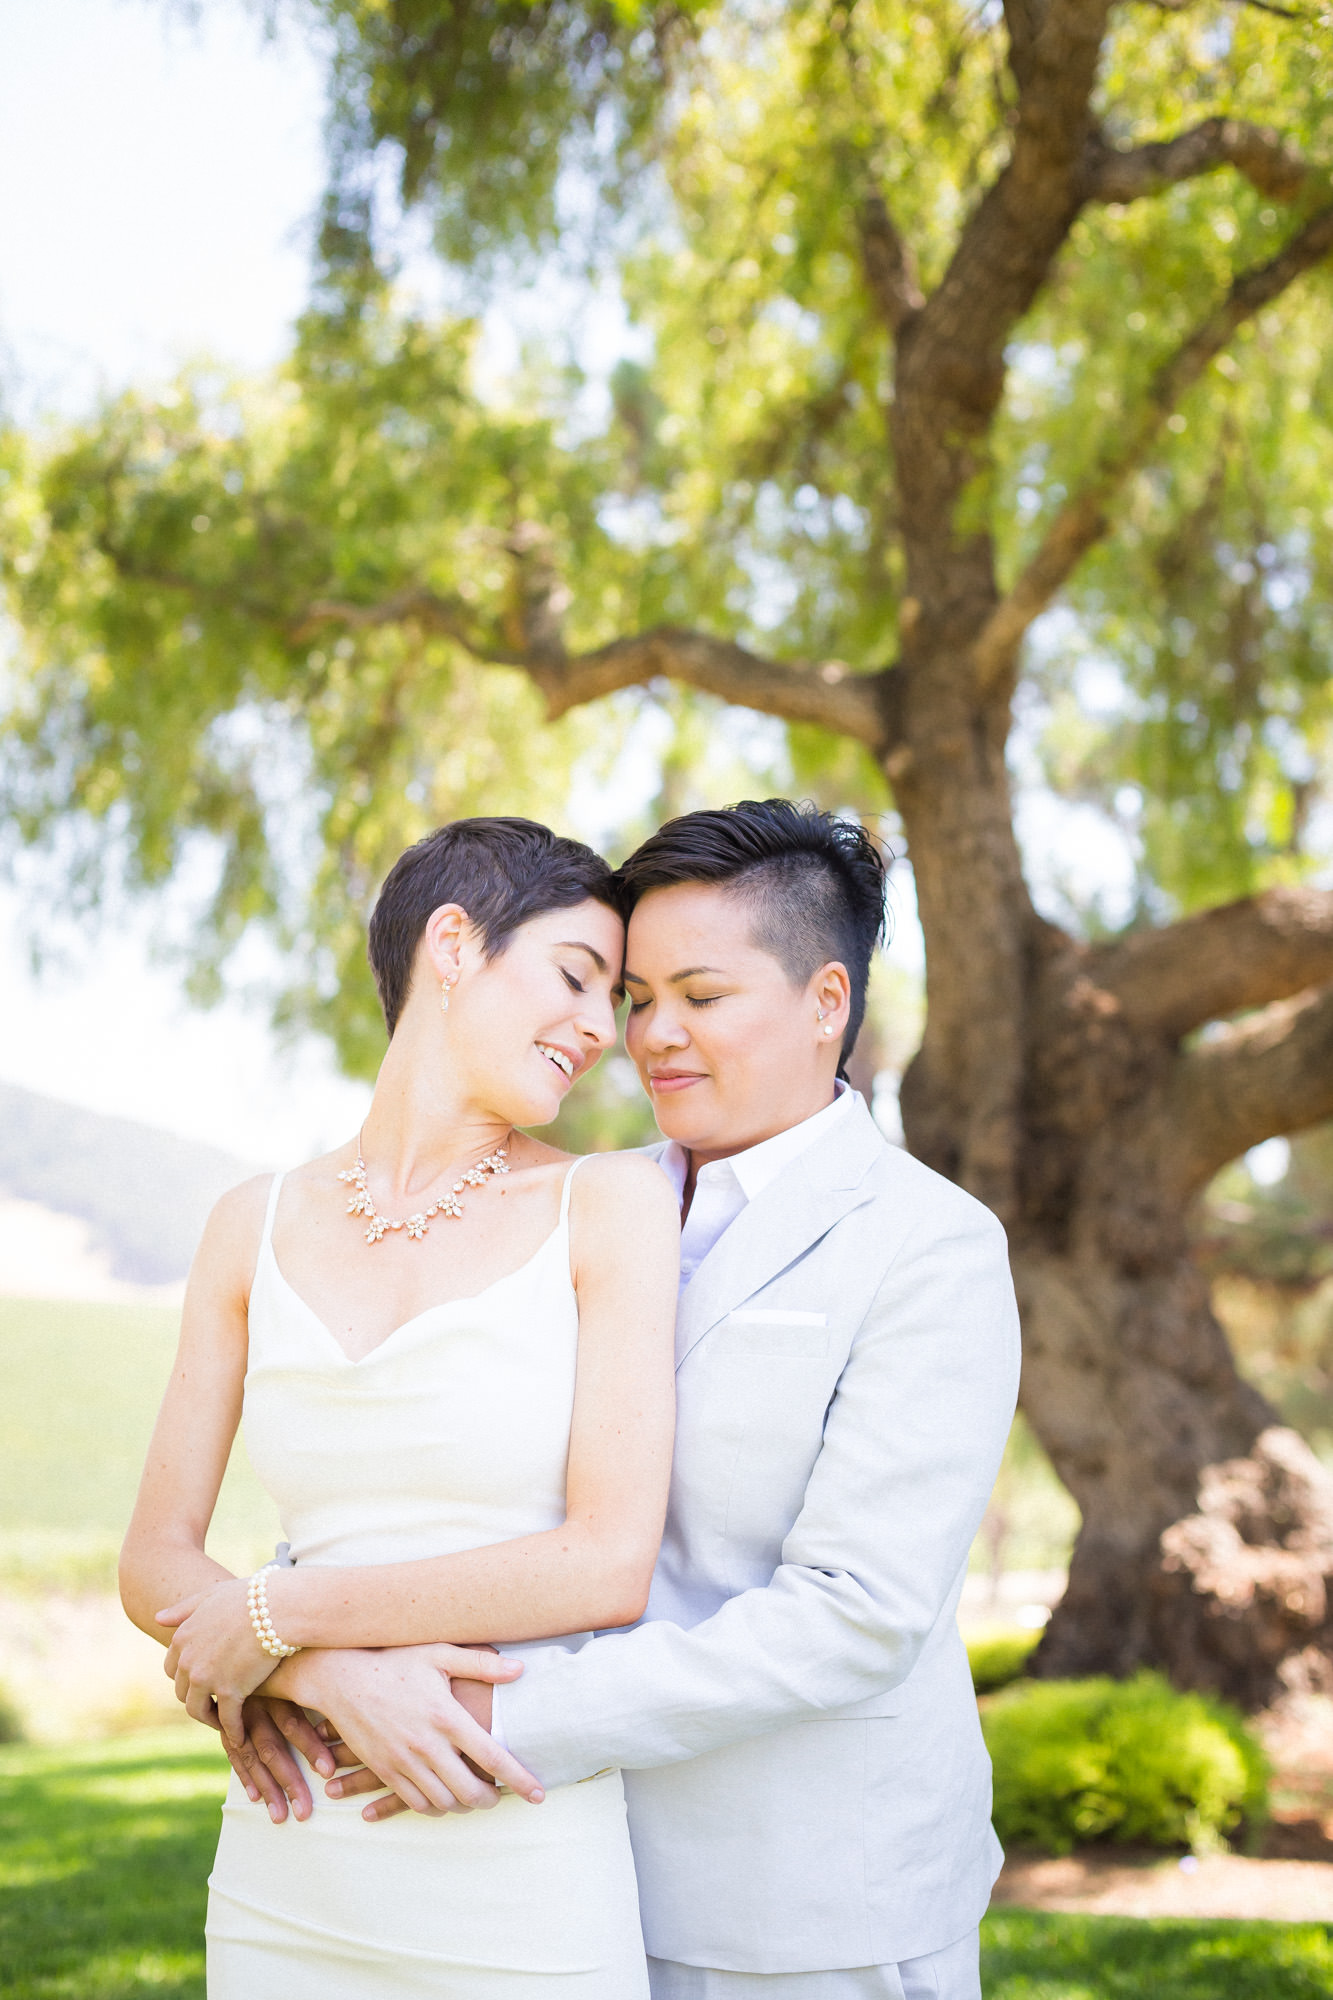 Greengate Ranch Wedding - Reese & Lauren - Clair Images - San Luis Obispo Wedding Photographers